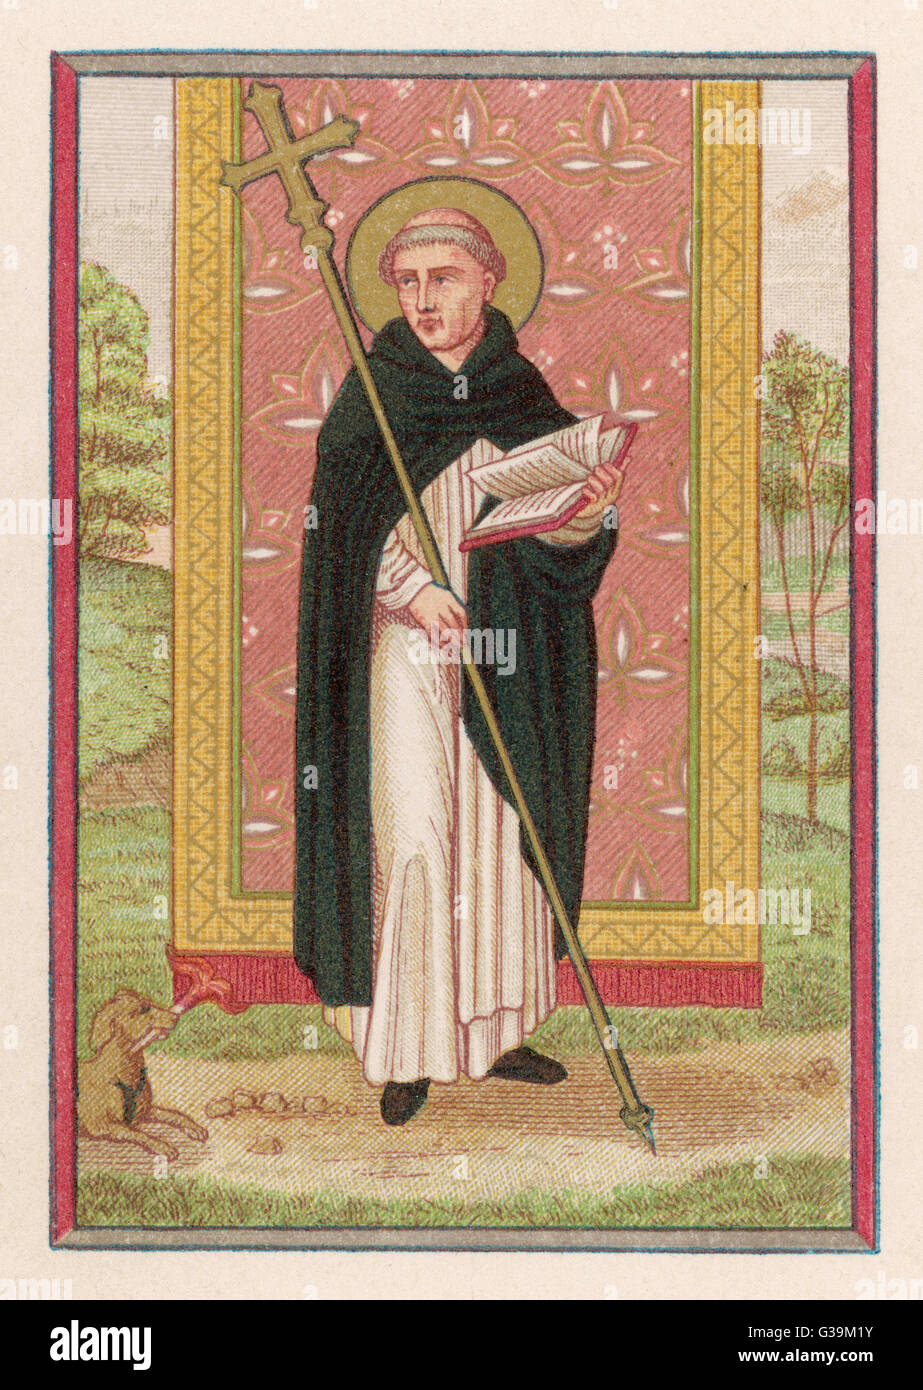 SAINT DOMINIC preacher, founder of the order  named after him, a relentless  opponent of heresy, especially  that - Stock Image